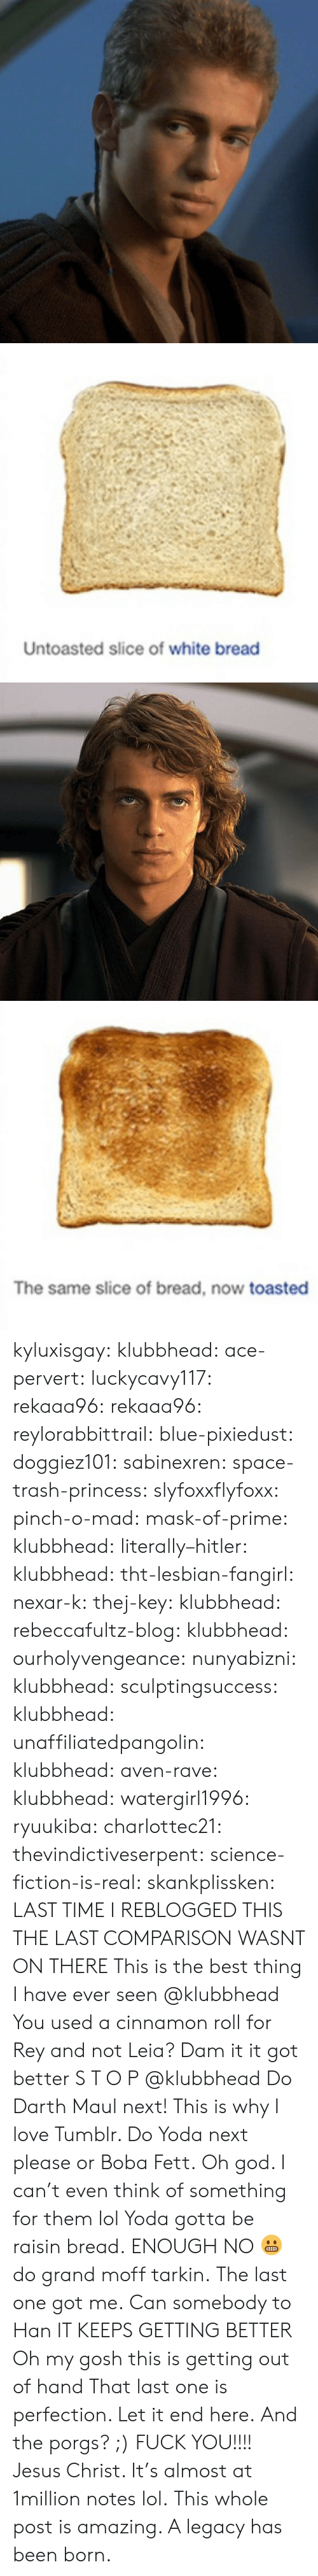 This Is Getting Out Of Hand: Untoasted slice of white bread   The same slice of bread, now toasted kyluxisgay:  klubbhead:  ace-pervert:   luckycavy117:  rekaaa96:  rekaaa96:   reylorabbittrail:   blue-pixiedust:  doggiez101:  sabinexren:  space-trash-princess:   slyfoxxflyfoxx:  pinch-o-mad:  mask-of-prime:  klubbhead:  literally–hitler:  klubbhead:  tht-lesbian-fangirl:  nexar-k:  thej-key:  klubbhead:  rebeccafultz-blog:   klubbhead:  ourholyvengeance:  nunyabizni:  klubbhead:  sculptingsuccess:  klubbhead:   unaffiliatedpangolin:  klubbhead:  aven-rave:  klubbhead:   watergirl1996:  ryuukiba:  charlottec21:  thevindictiveserpent:  science-fiction-is-real:  skankplissken:                   LAST TIME I REBLOGGED THIS THE LAST COMPARISON WASNT ON THERE    This is the best thing I have ever seen   @klubbhead You used a cinnamon roll for Rey and not Leia?    Dam it it got better   S T O P  @klubbhead Do Darth Maul next!   This is why I love Tumblr. Do Yoda next please or Boba Fett.   Oh god. I can't even think of something for them lol  Yoda gotta be raisin bread.   ENOUGH   NO 😬 do grand moff tarkin.     The last one got me.   Can somebody to Han     IT KEEPS GETTING BETTER   Oh my gosh this is getting out of hand      That last one is perfection.  Let it end here.   And the porgs? ;)      FUCK YOU!!!!   Jesus Christ. It's almost at 1million notes lol.   This whole post is amazing. A legacy has been born.